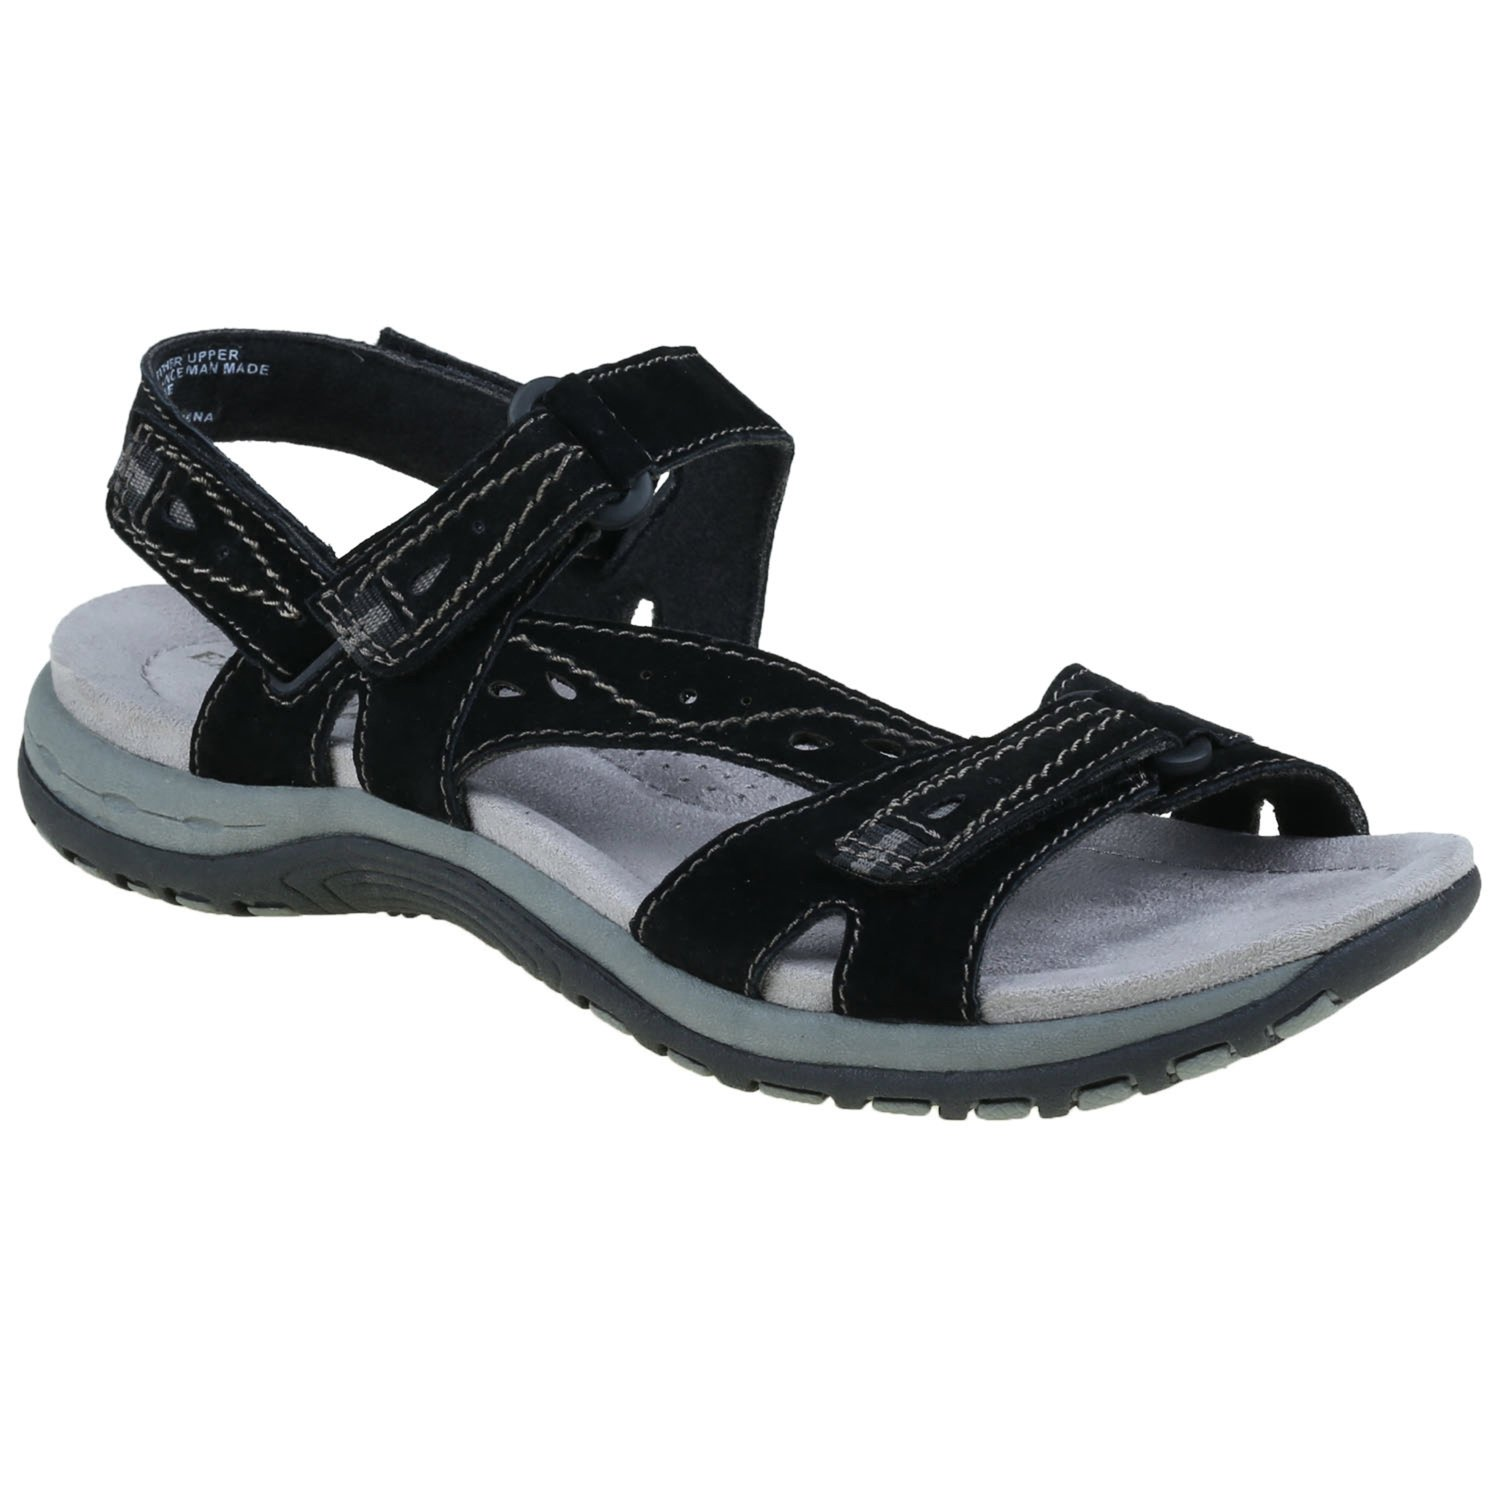 Earth Origins Women's Sophie Sandals B018QTNZKI 6.5 C/D US|Black